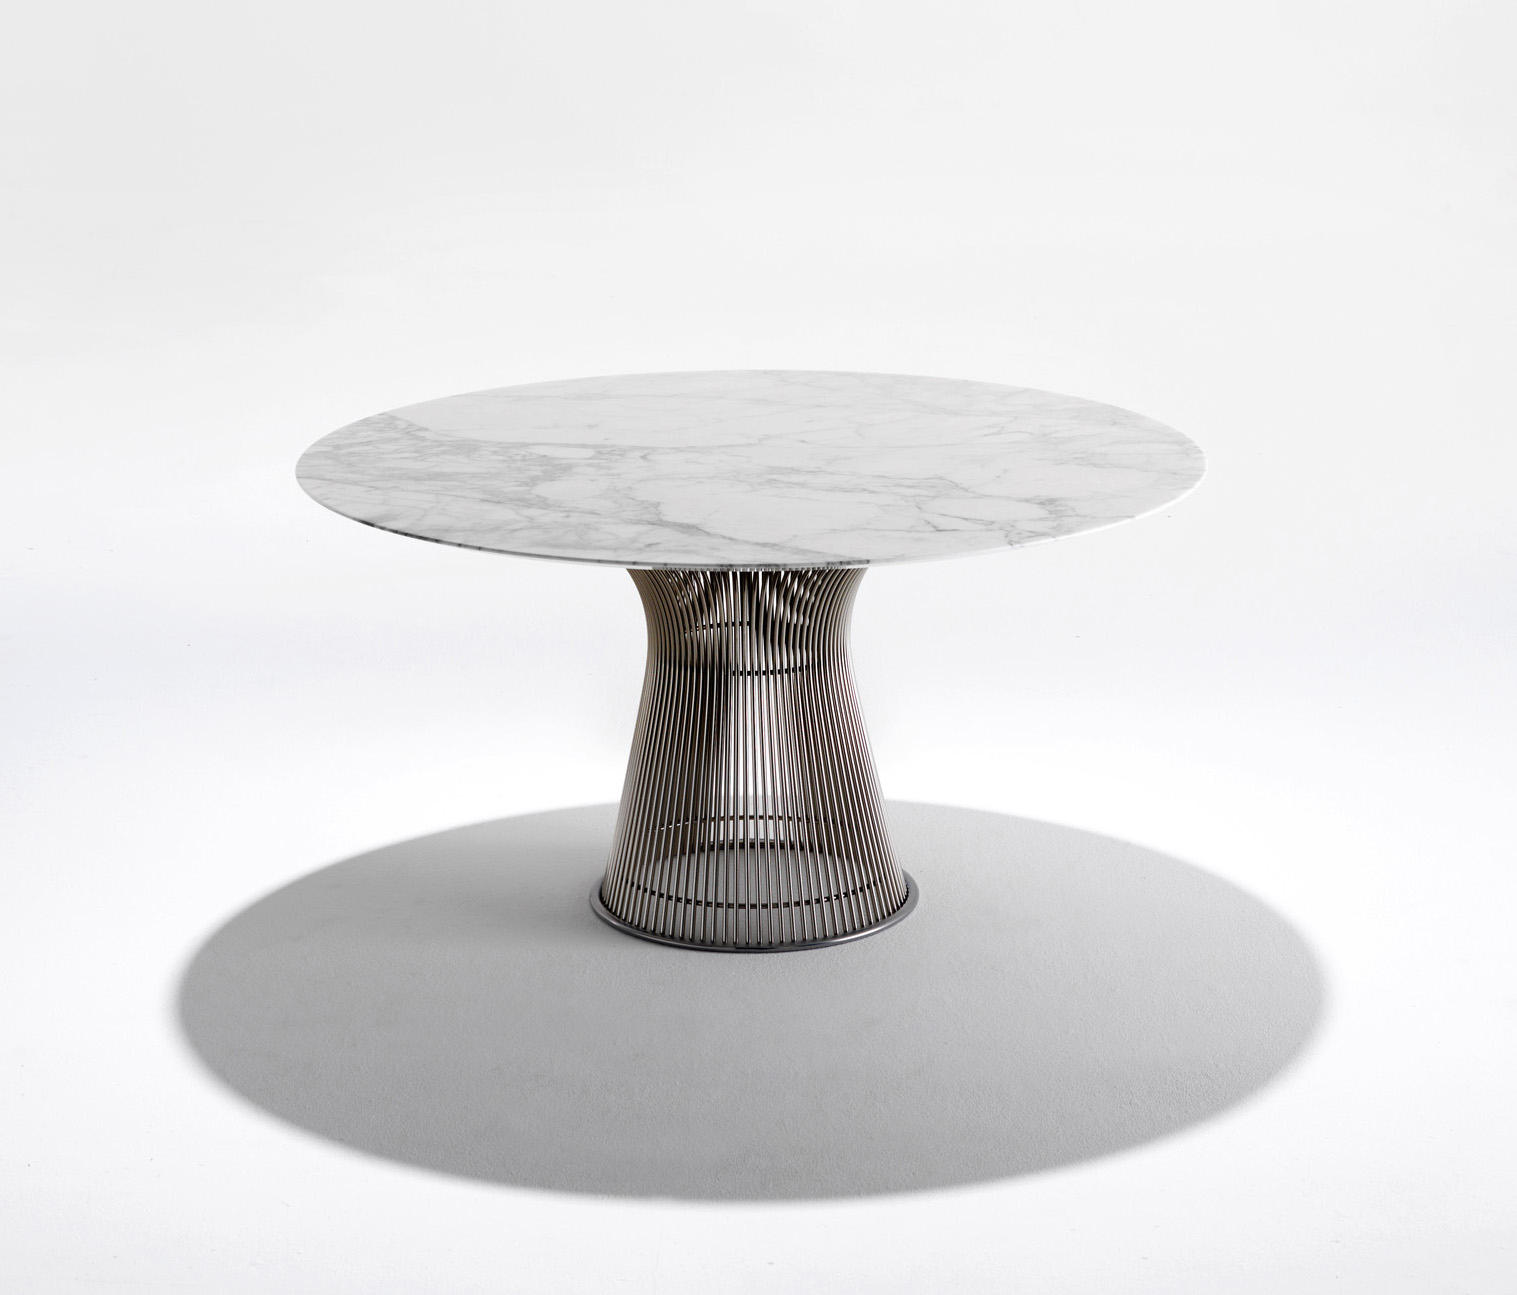 PLATNER DINING TABLE Dining tables from Knoll  : platner table marble top 0096 b from www.architonic.com size 1517 x 1295 jpeg 95kB